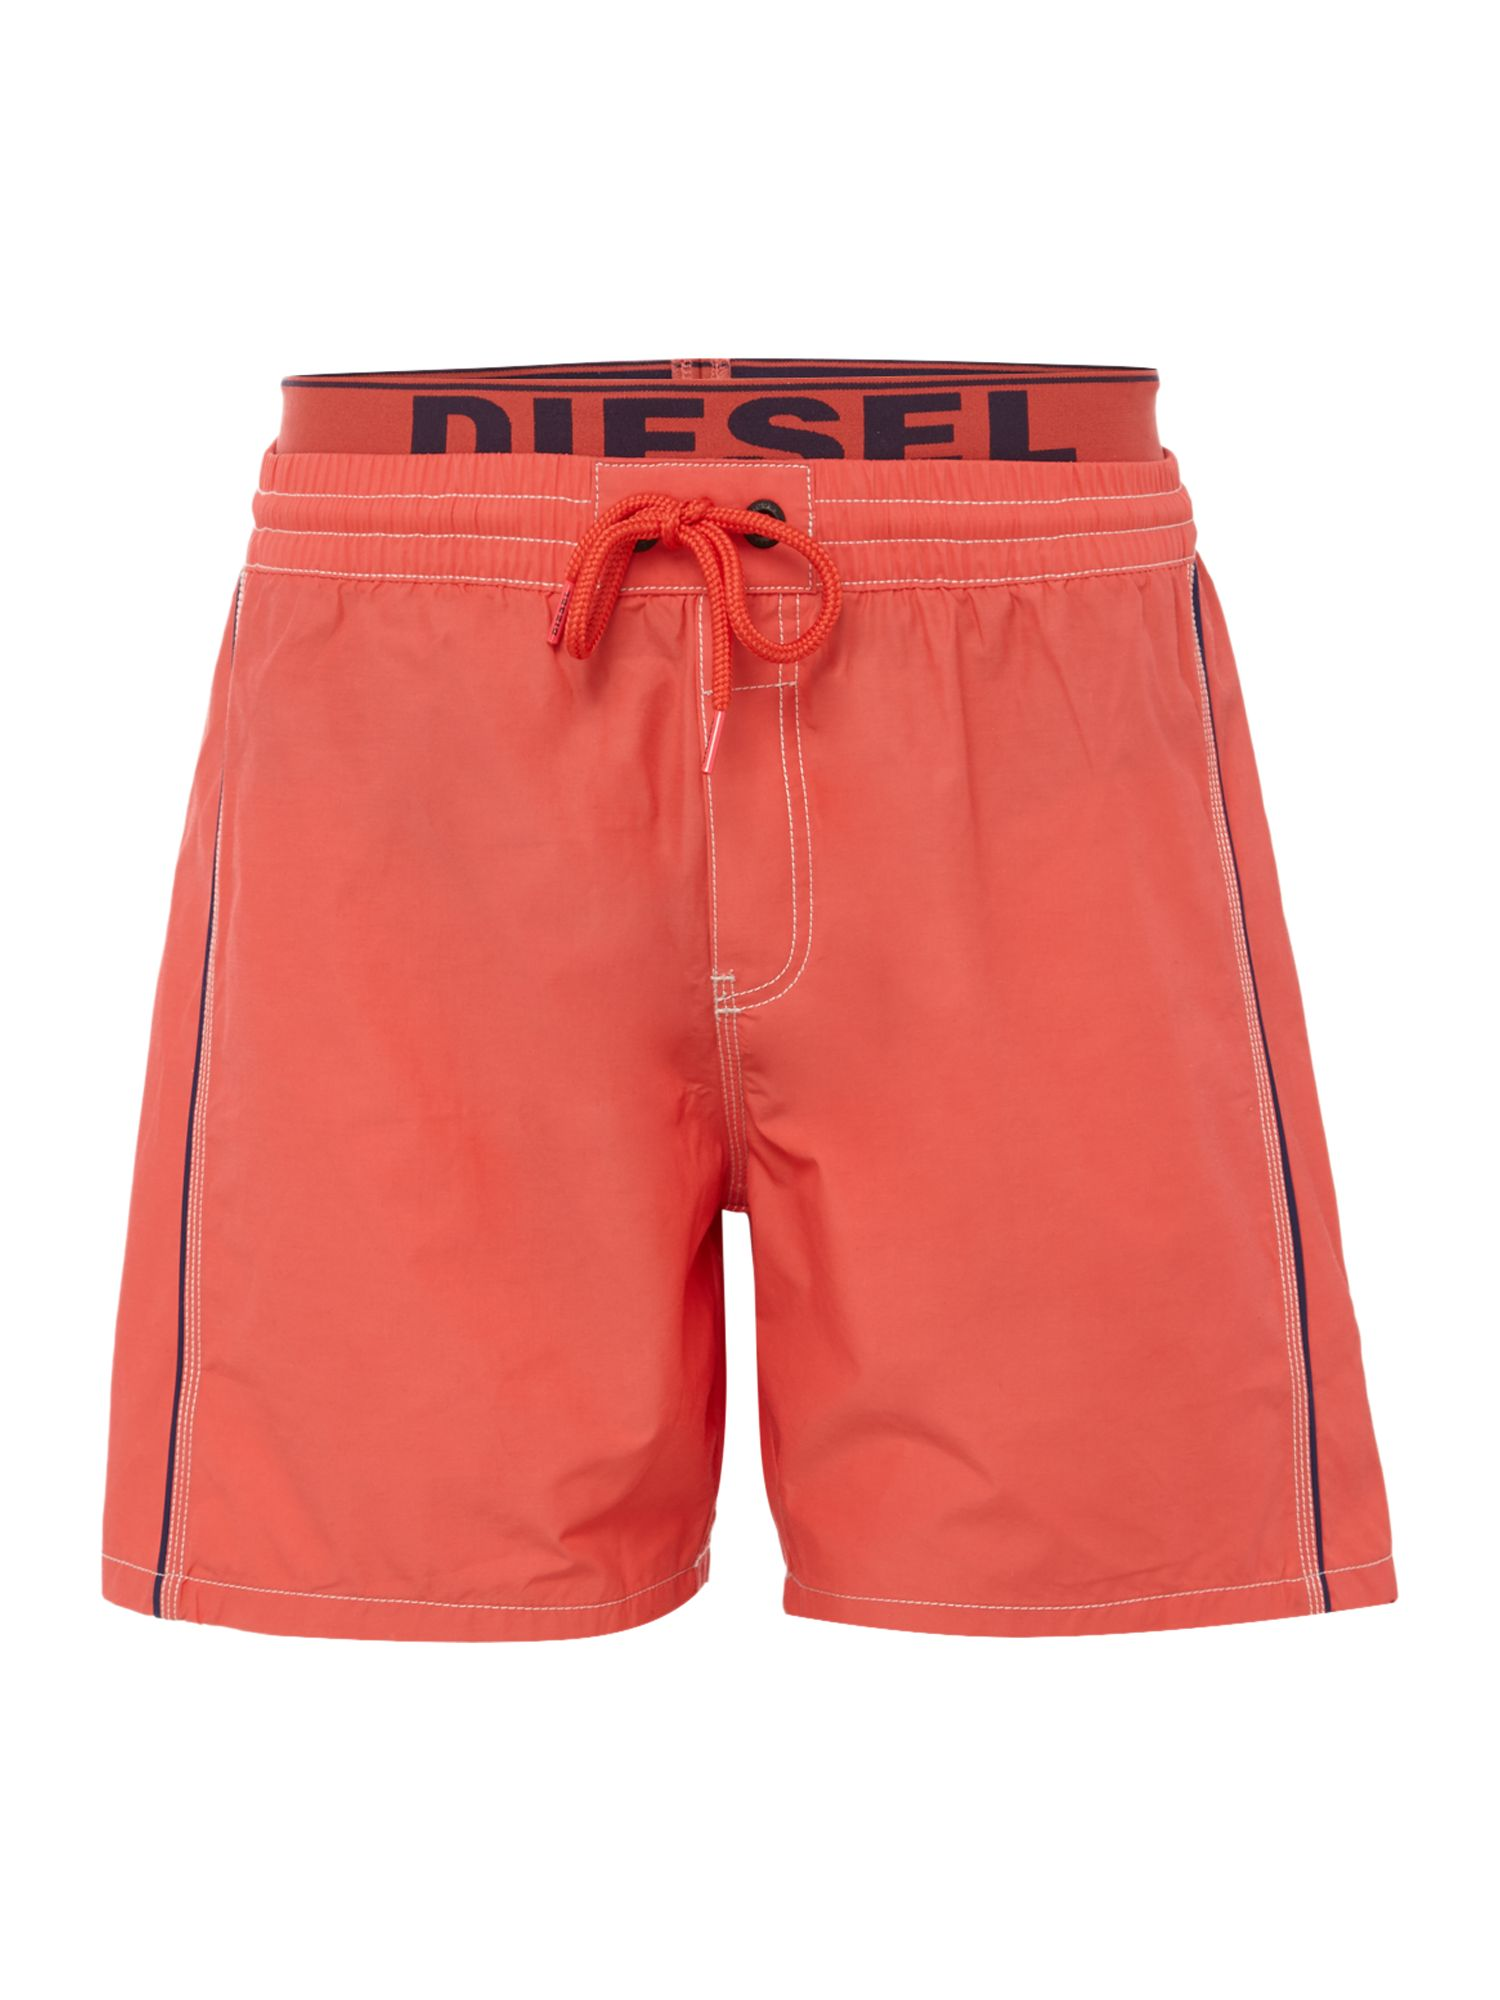 Men's Diesel Double Waistband Swim Short, Pink